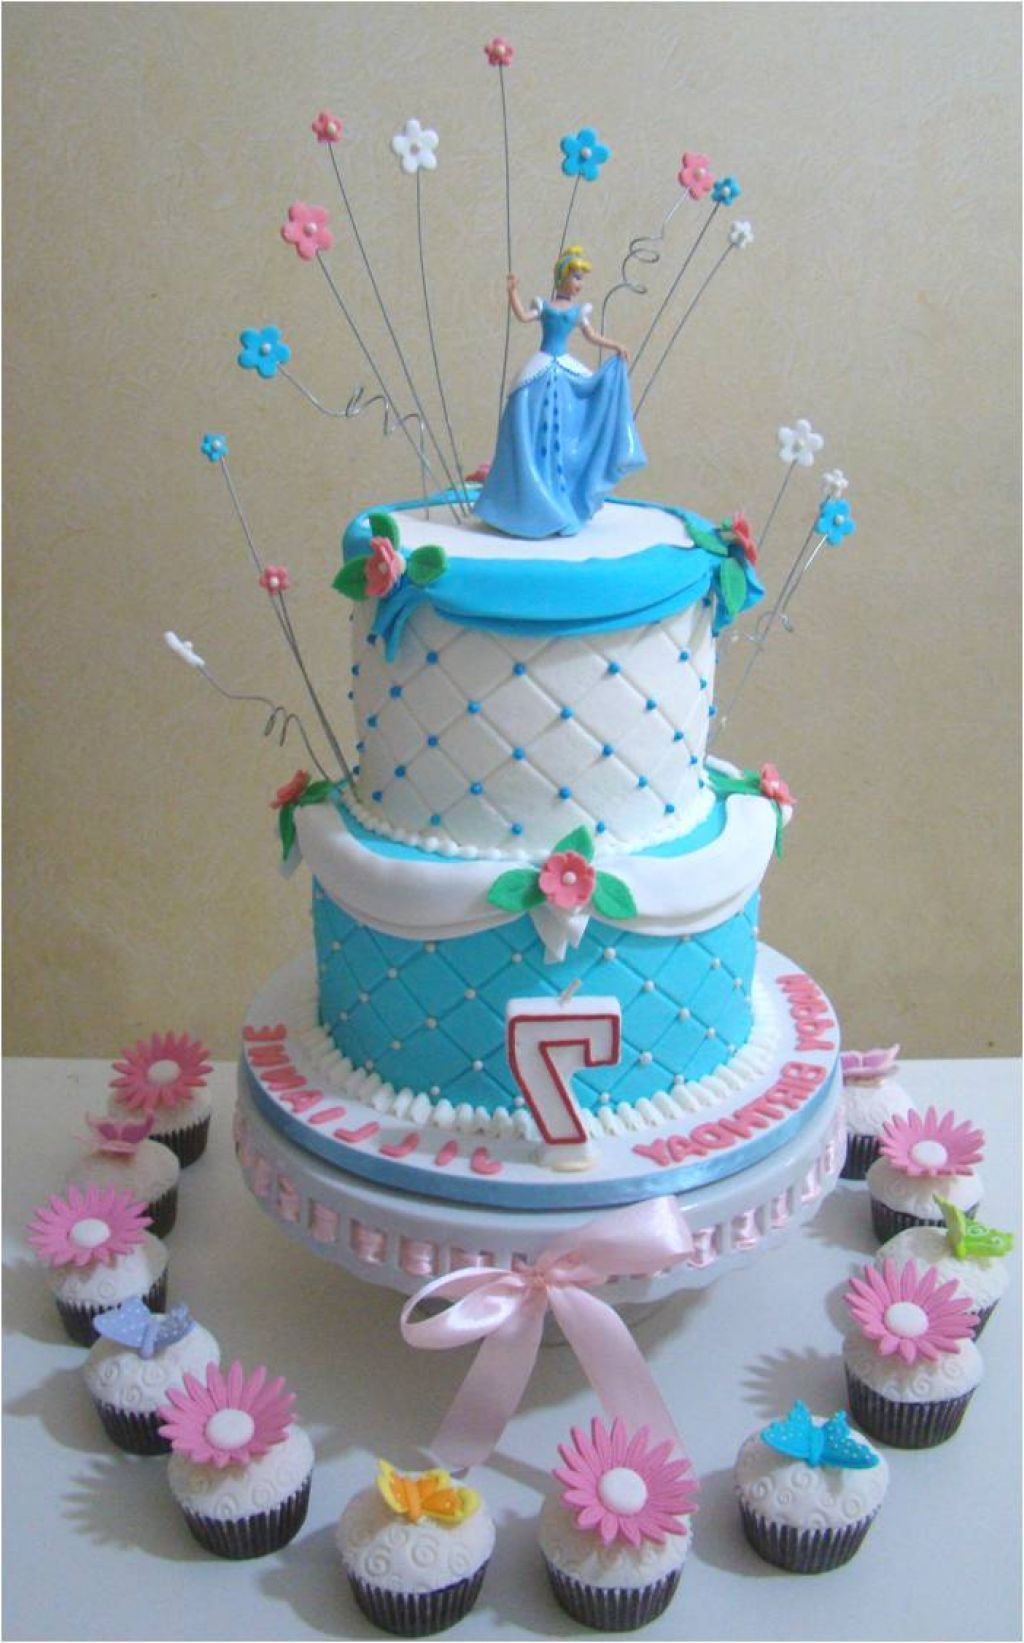 Cinderella Birthday Cakes Cinderella Birthday Cake Ideas Ehow Cake Ideas Cake Birthday